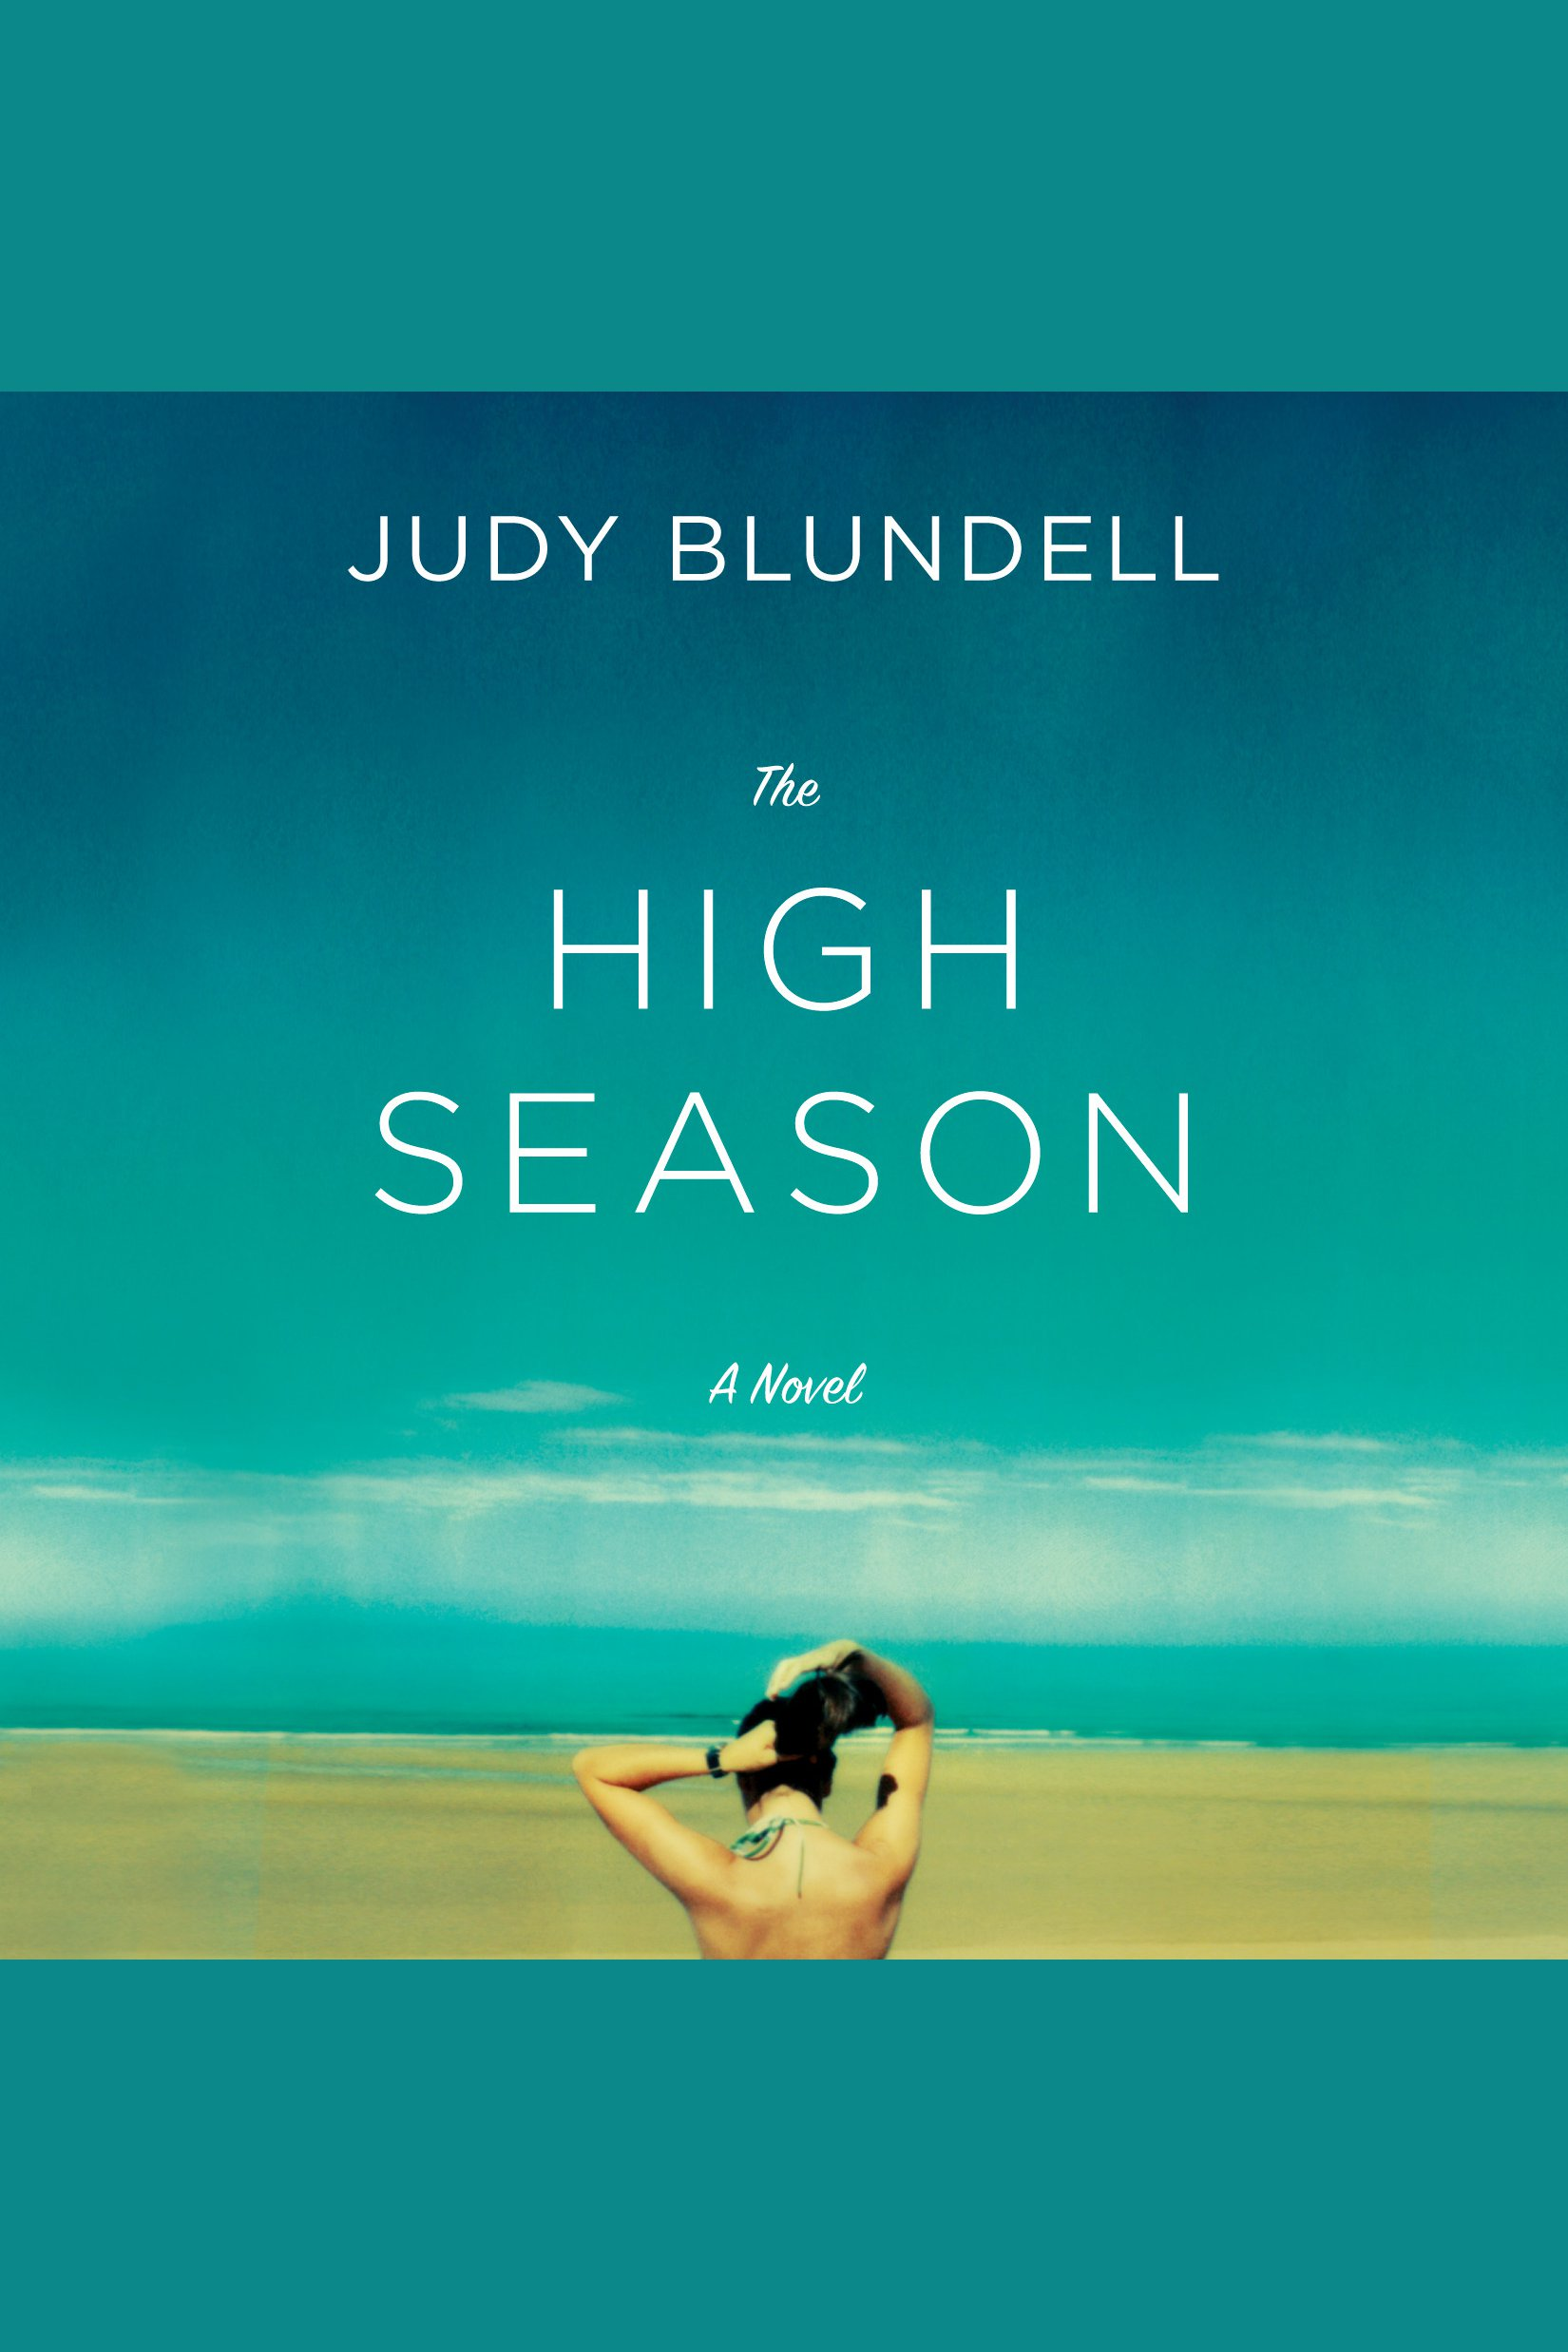 The high season cover image